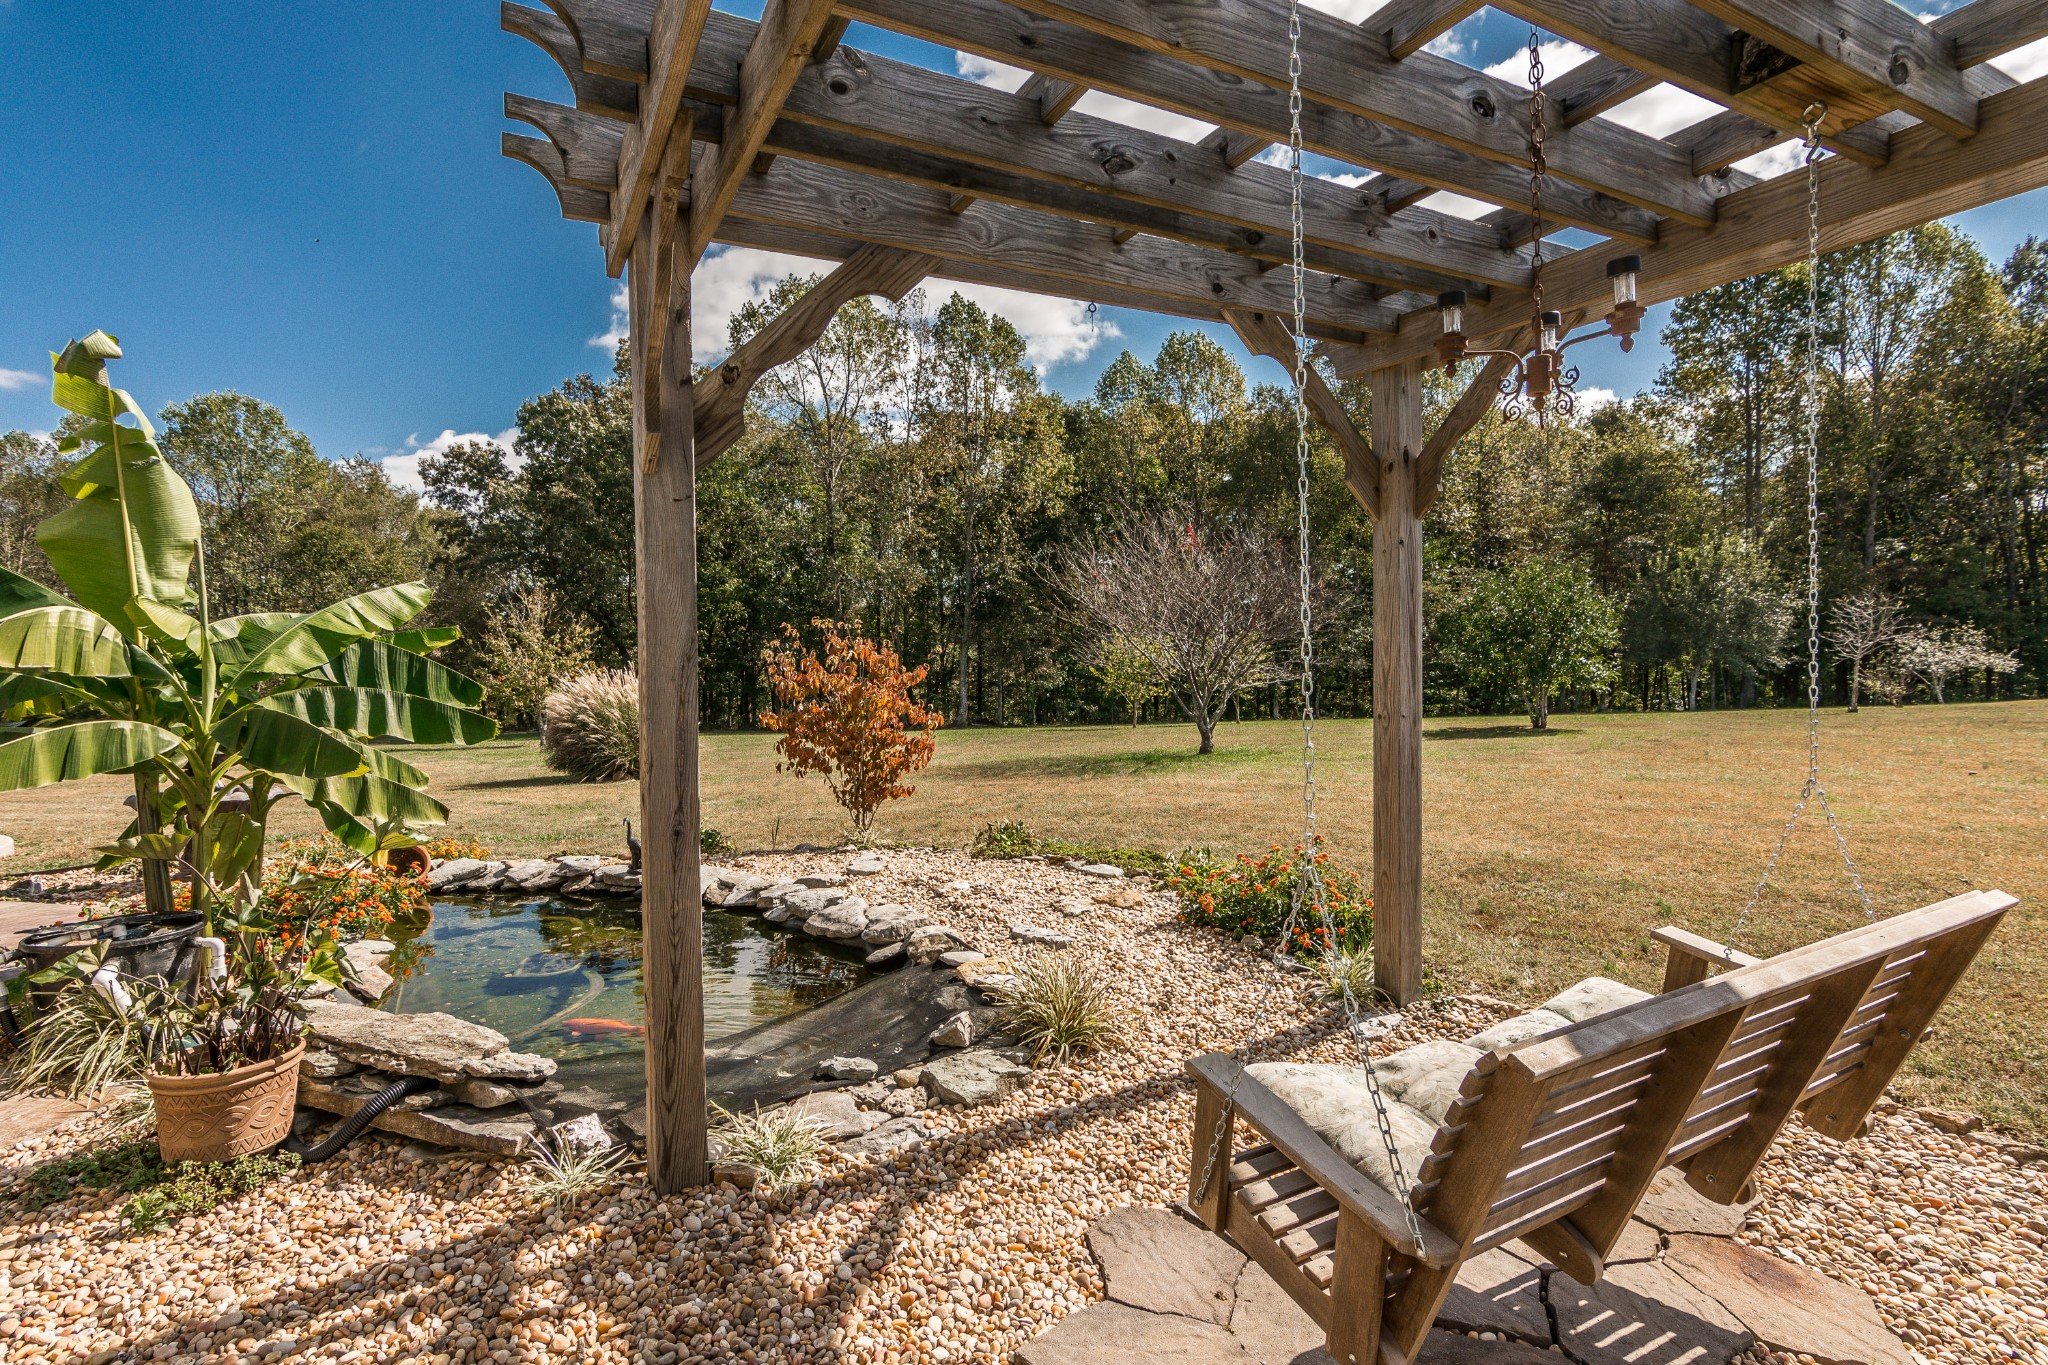 668 Old Highway 52 E, Bethpage, TN 37022 - Bethpage, TN real estate listing